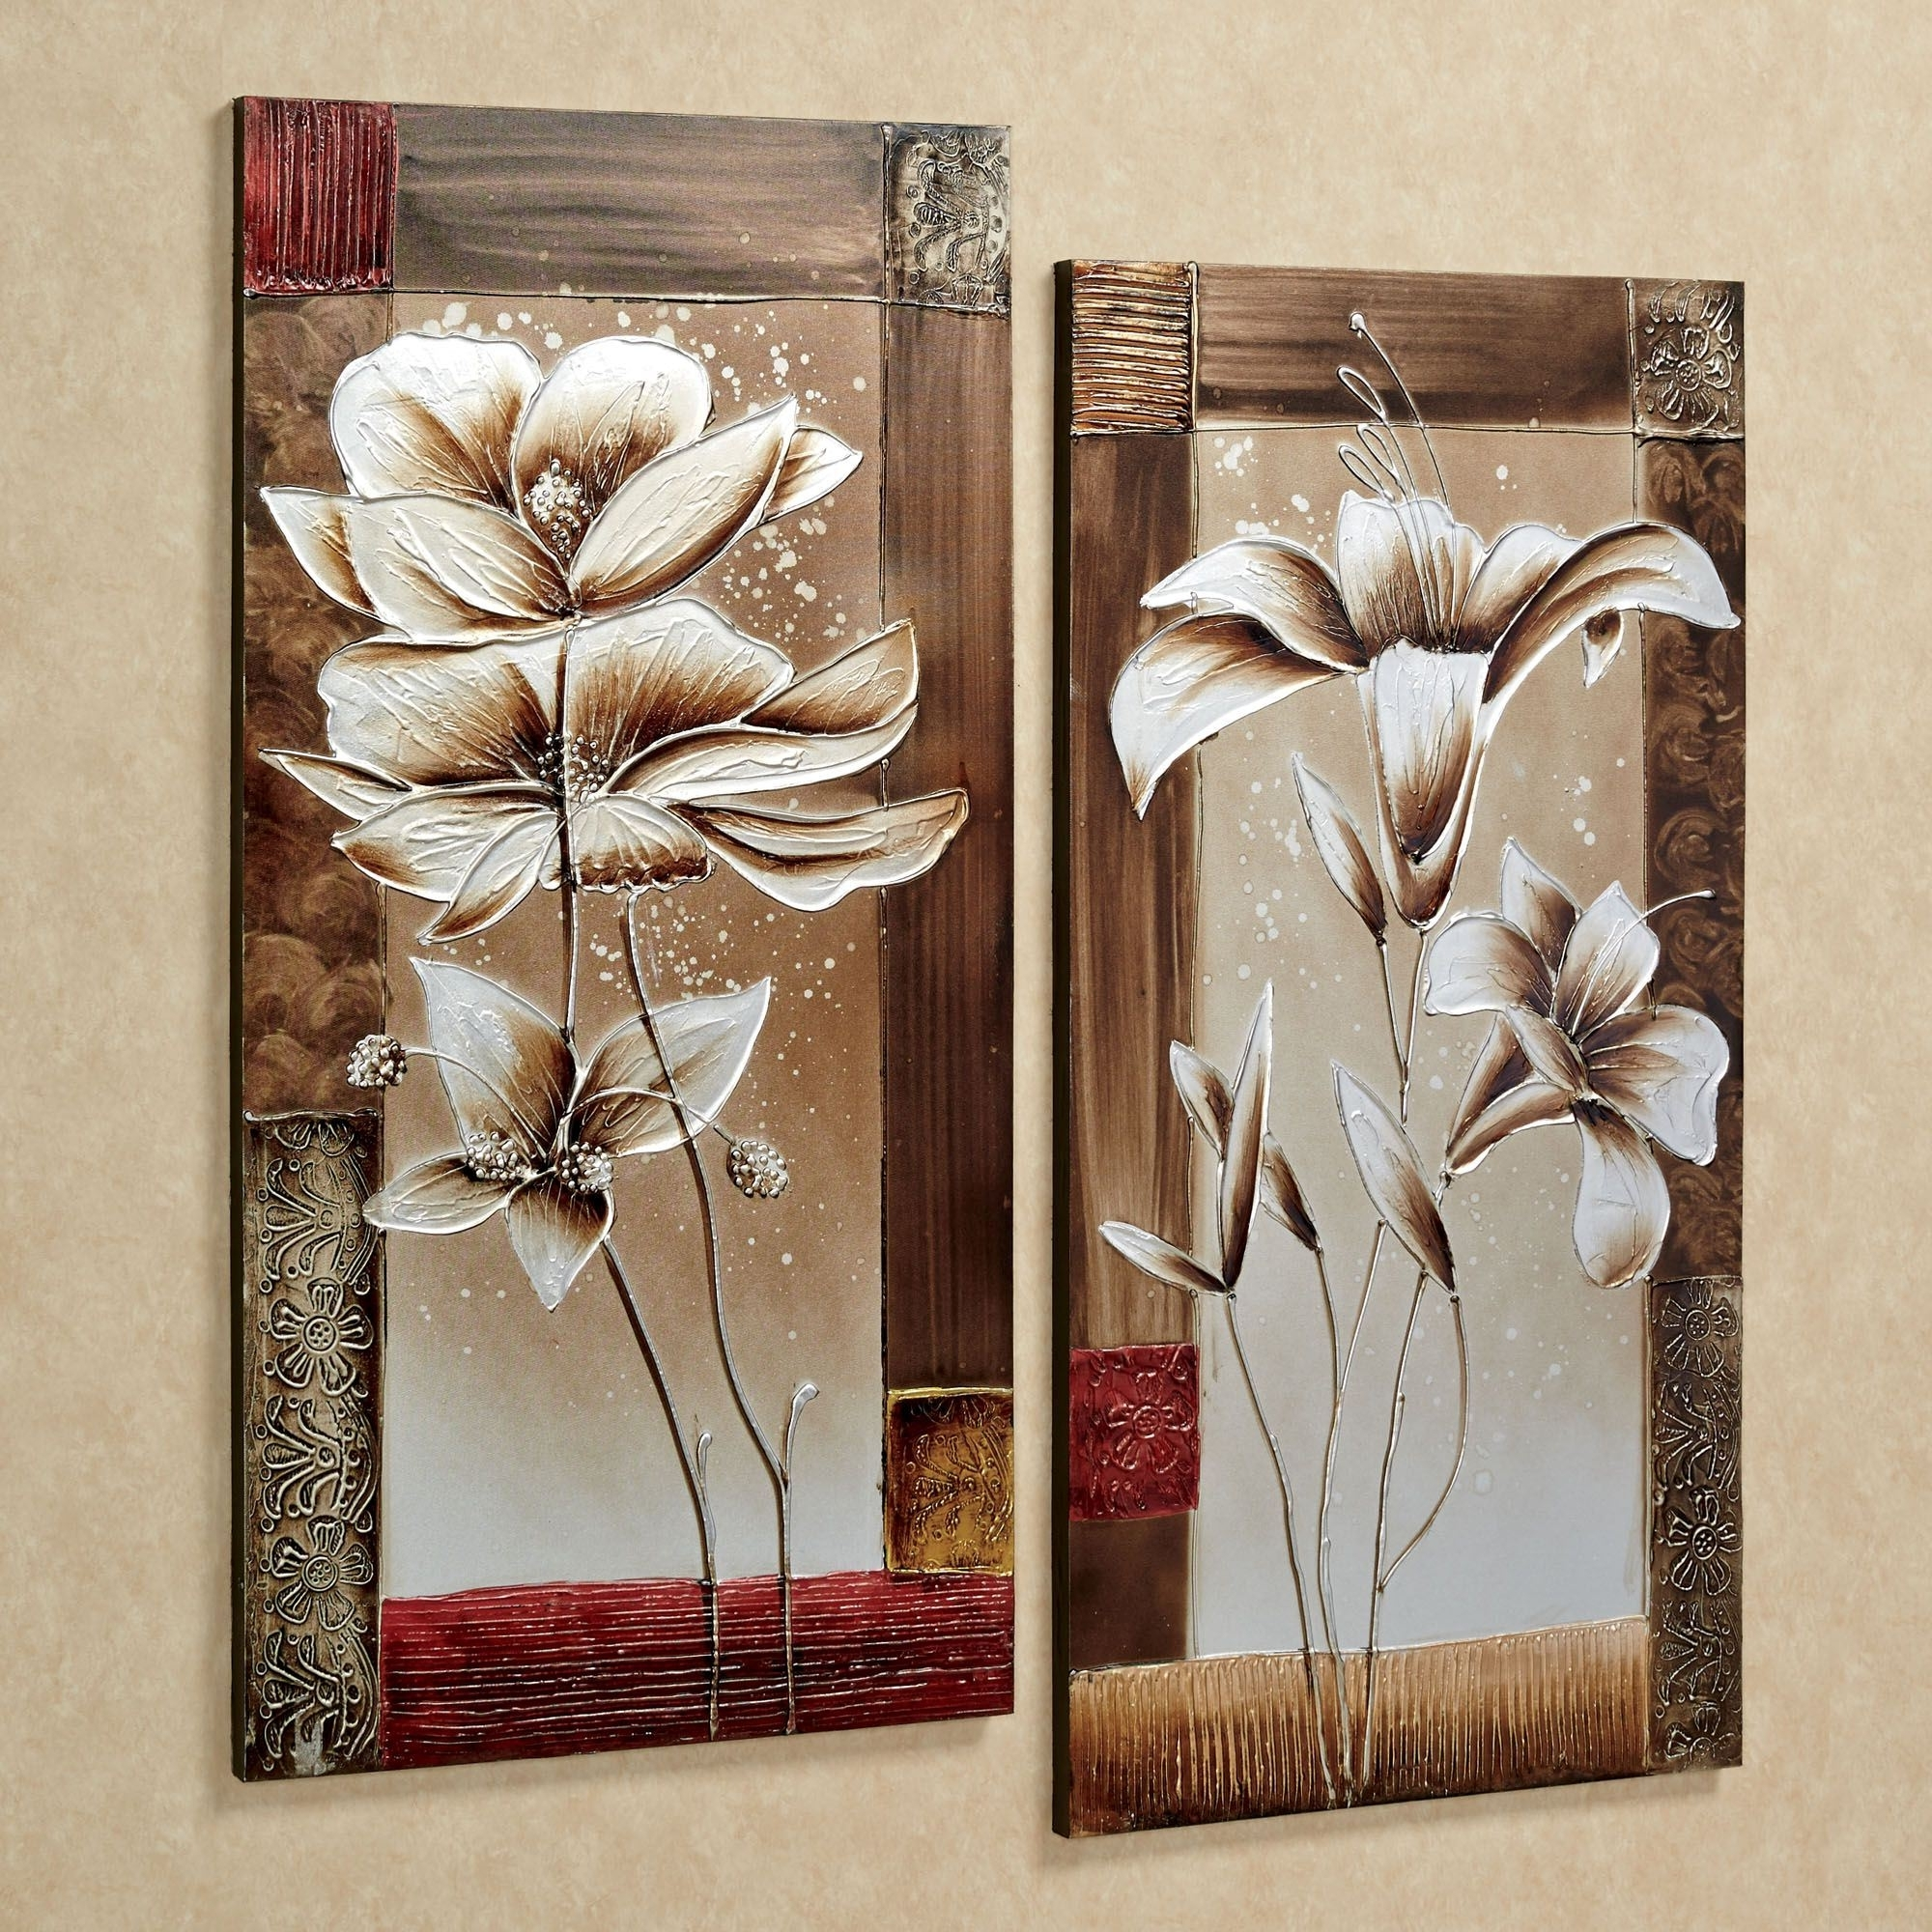 Preferred Canvas Wall Art Sets Intended For Petals Of Spring Floral Canvas Wall Art Set (Gallery 1 of 15)